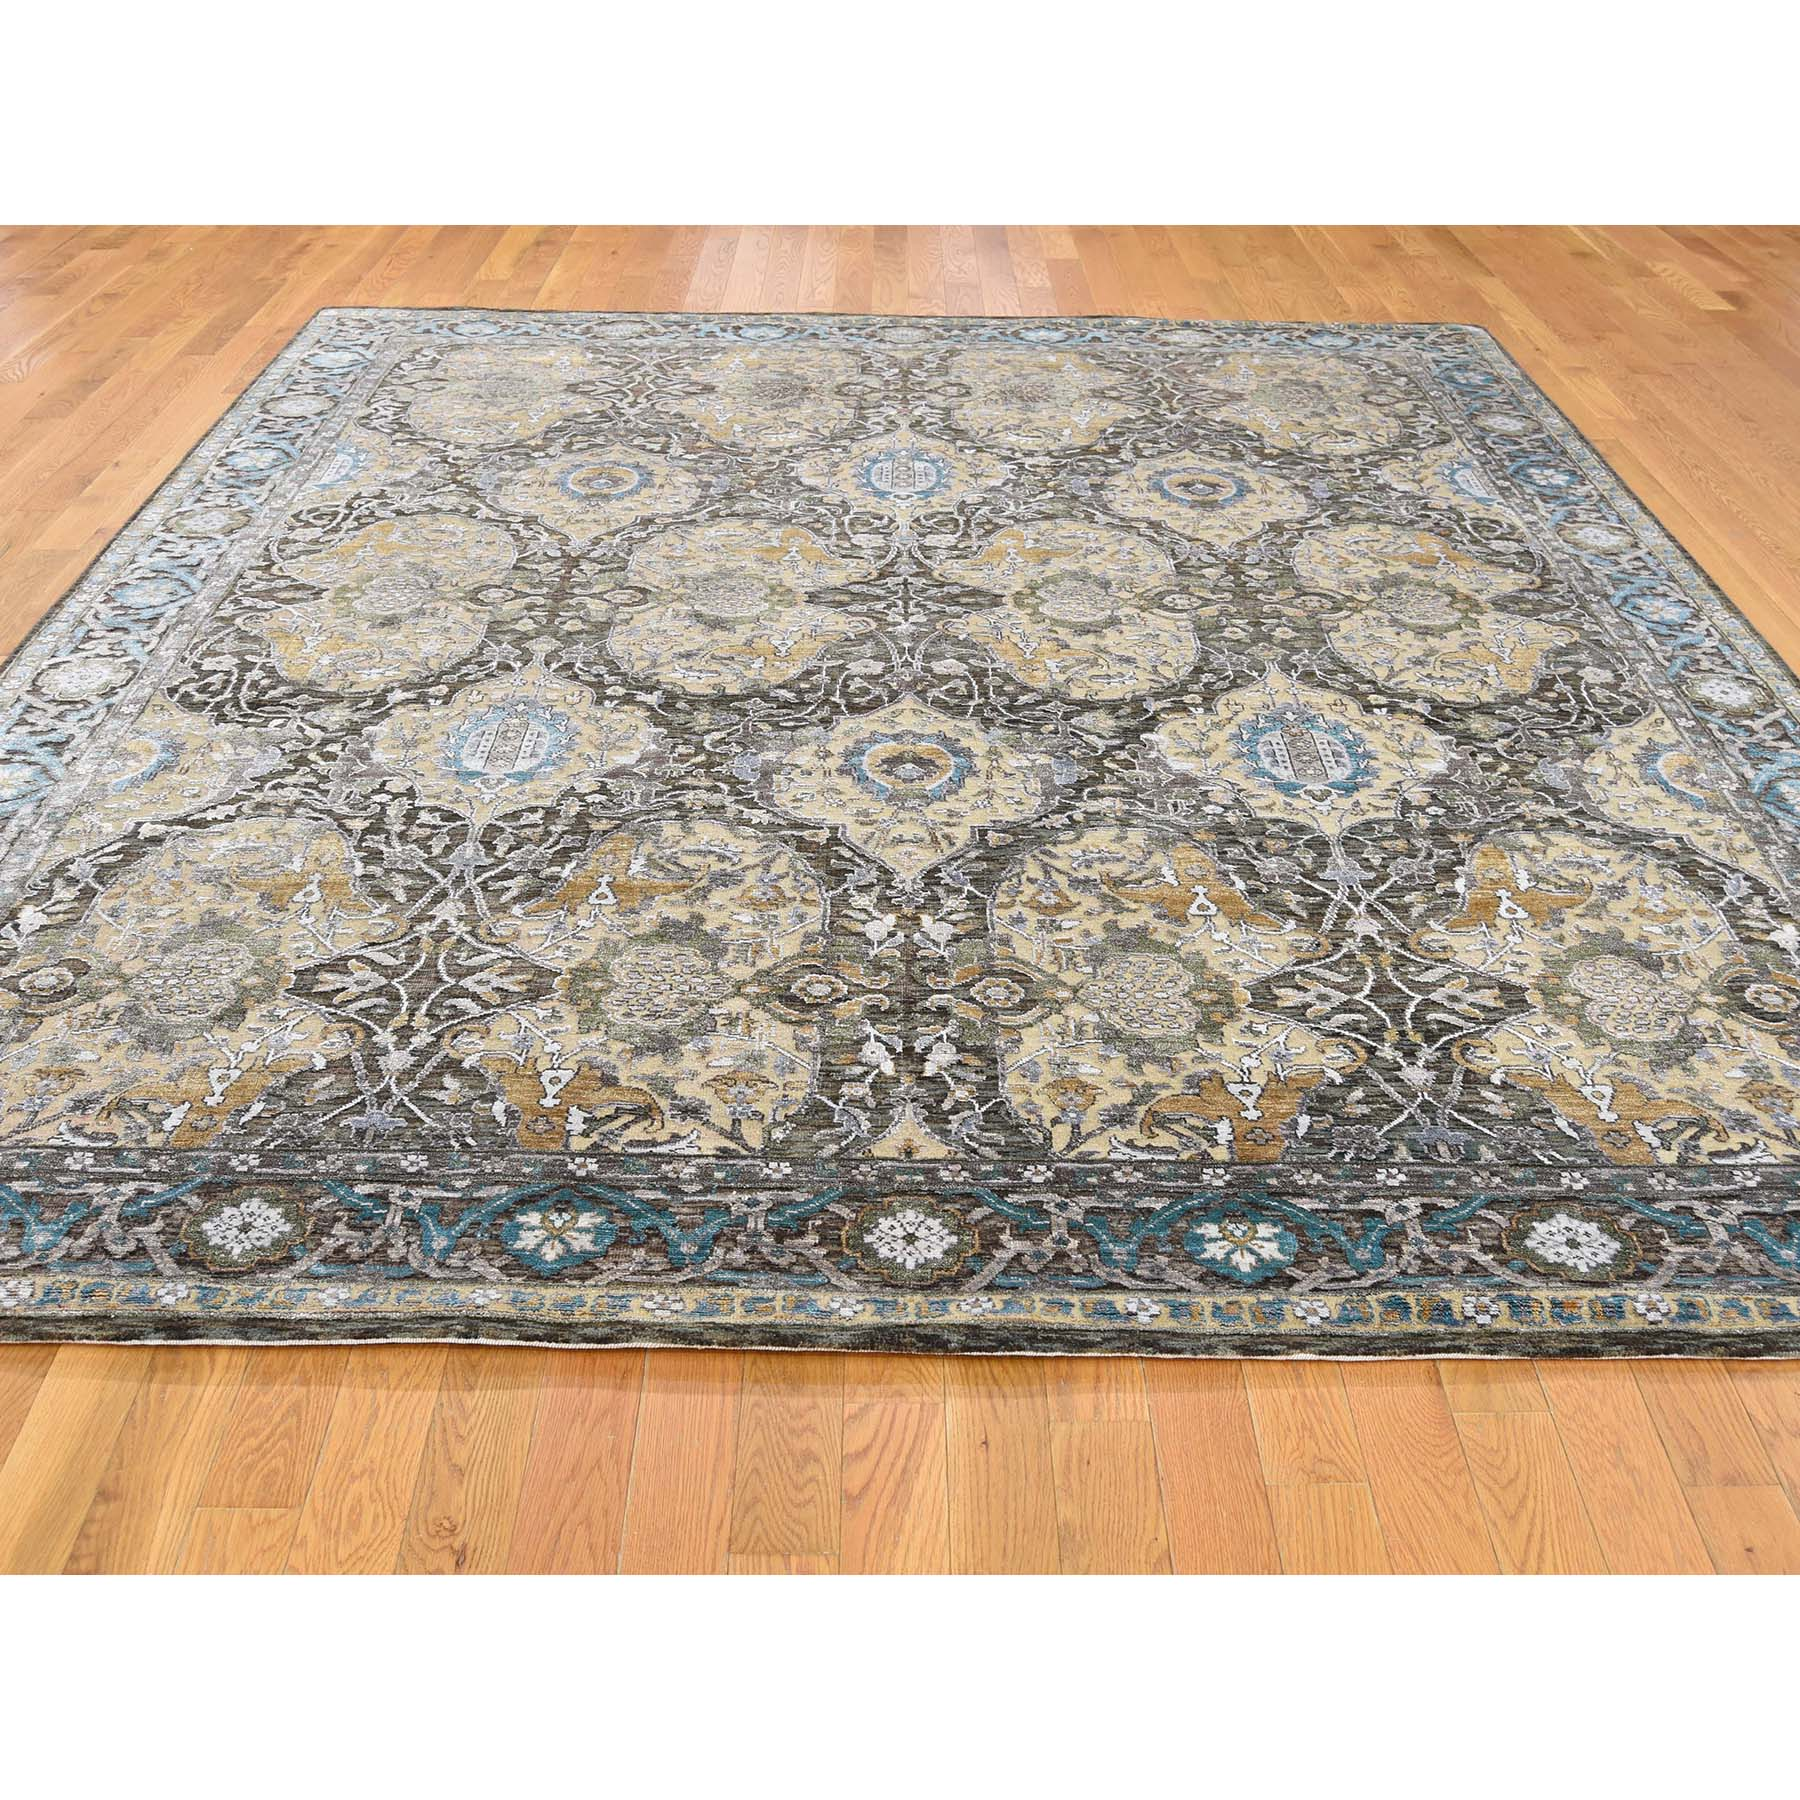 8-4--x9-9-- Silk with Oxidized Wool Ancient Cartouche Design Hand Knotted Rug